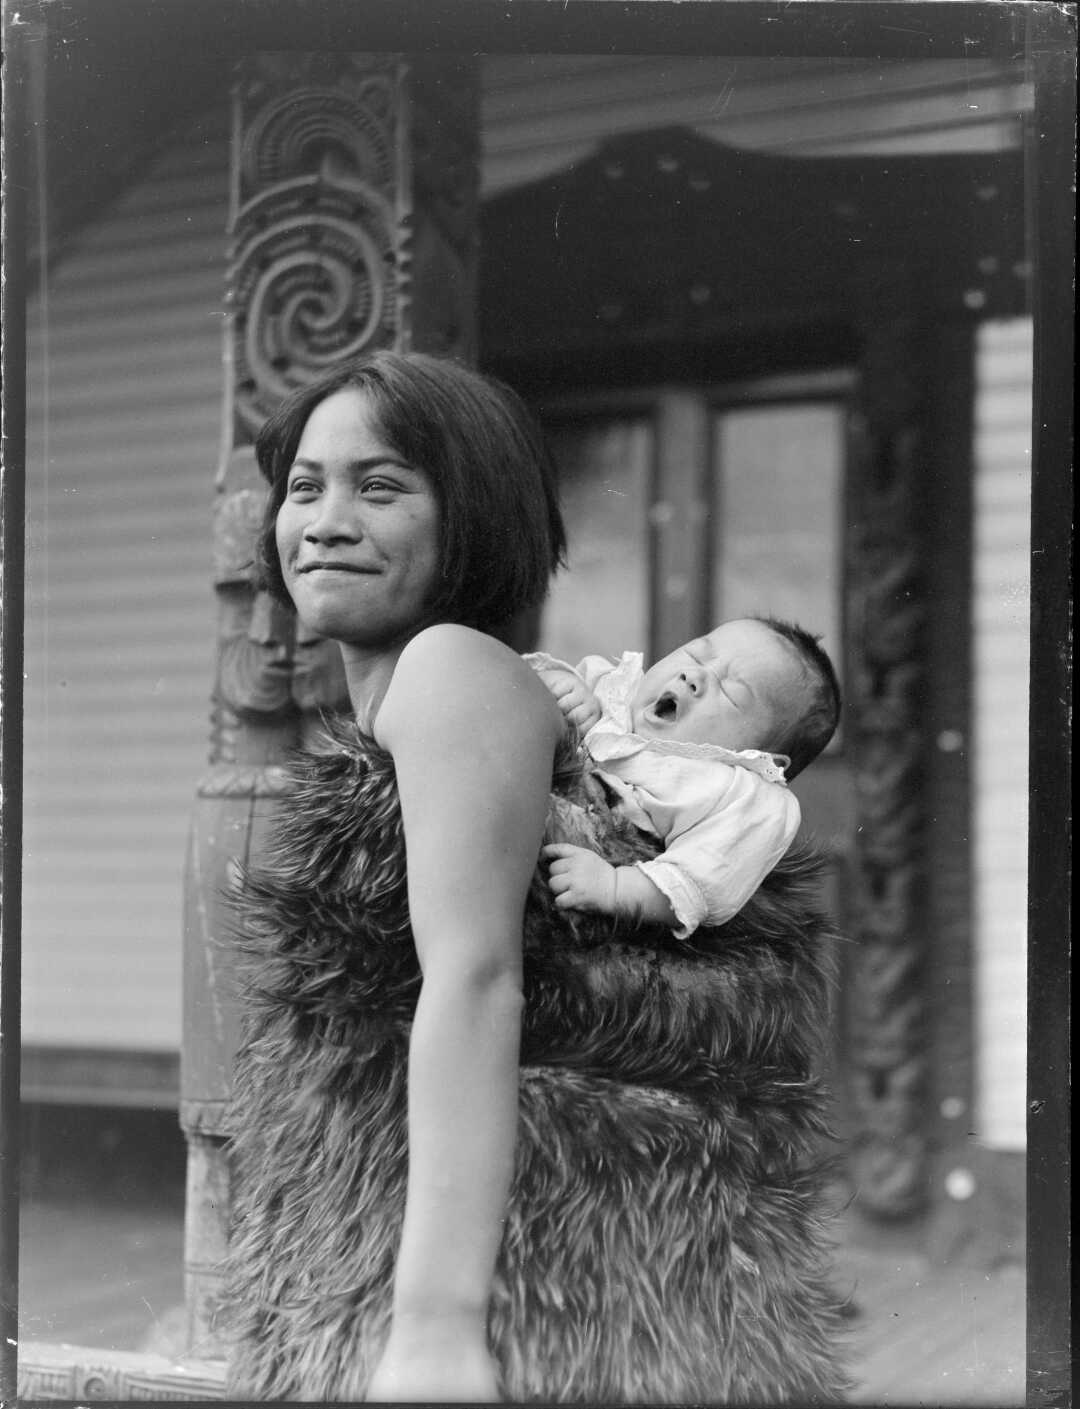 Maori woman carrying a young child on her back wrapped in a feather cloak. Ref: WA-12537-G